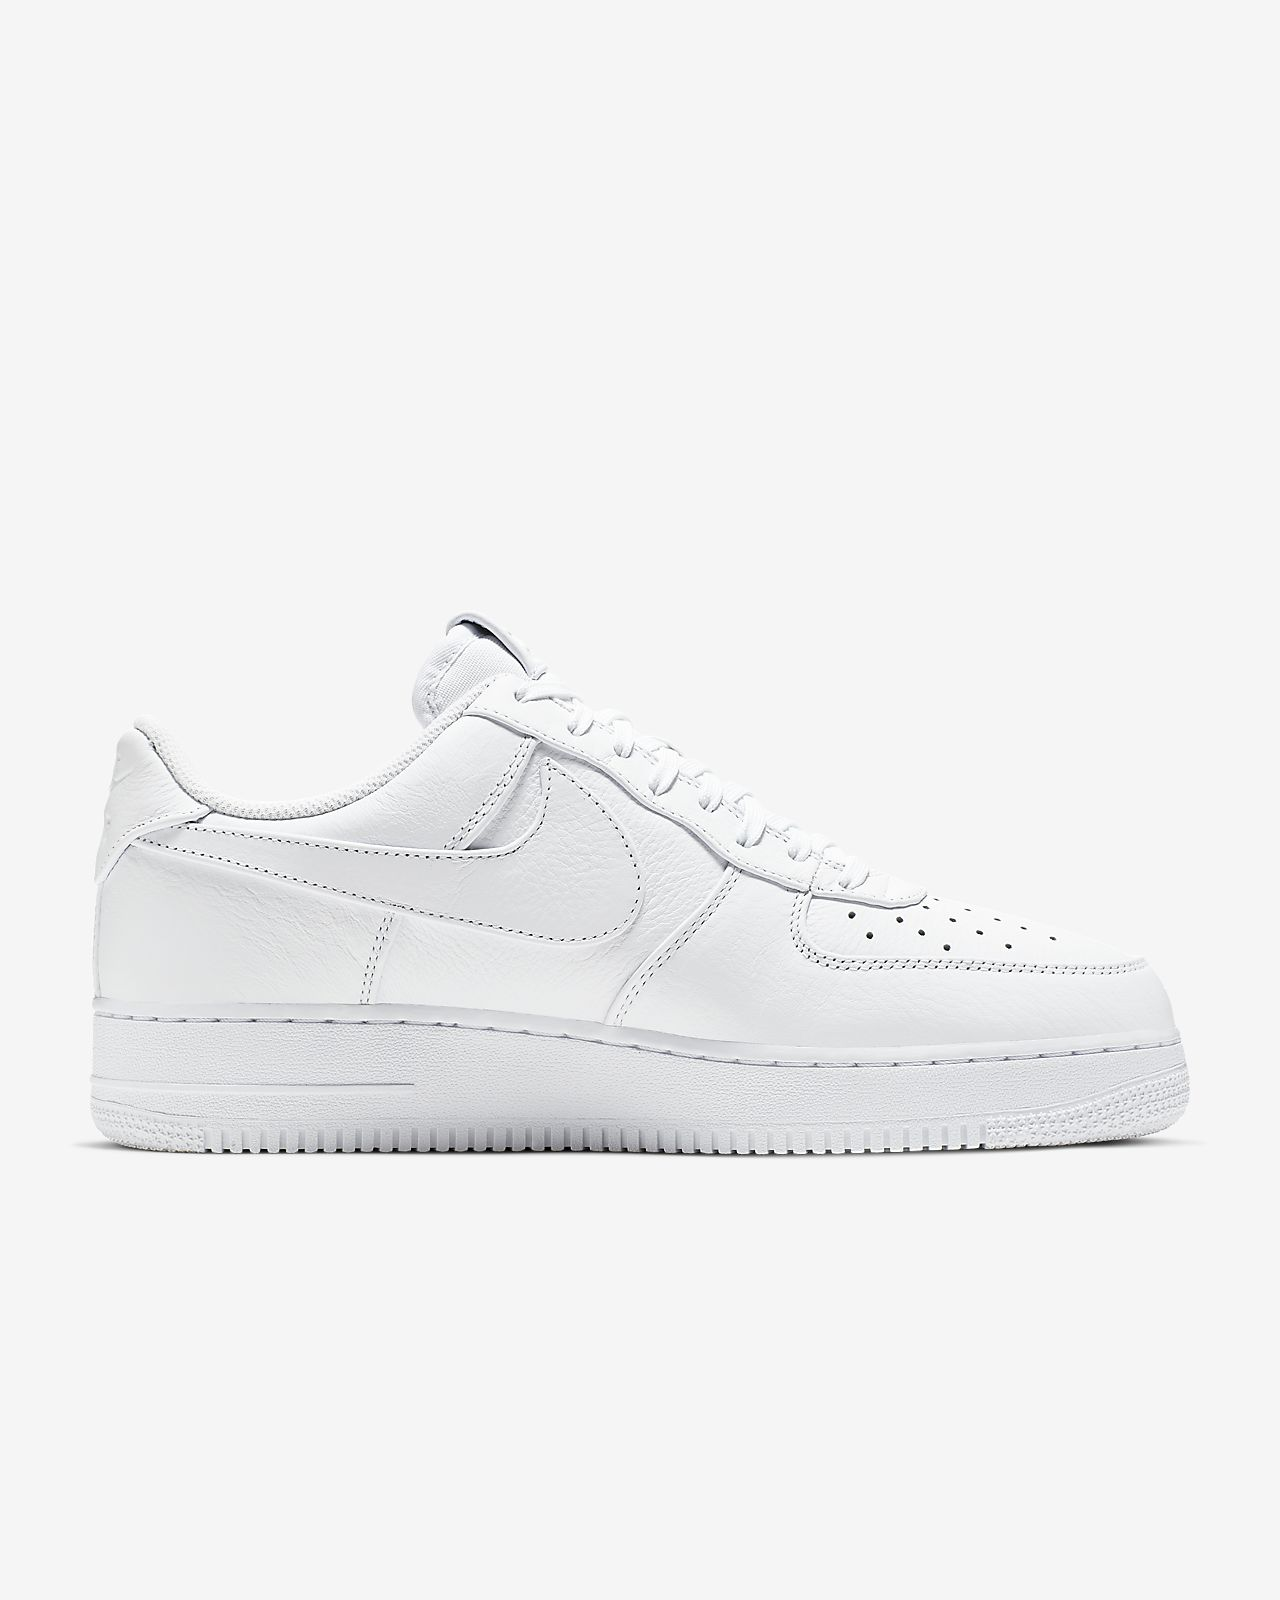 nouveau produit 208df 794af Nike Air Force 1 '07 Premium 2 Men's Shoe